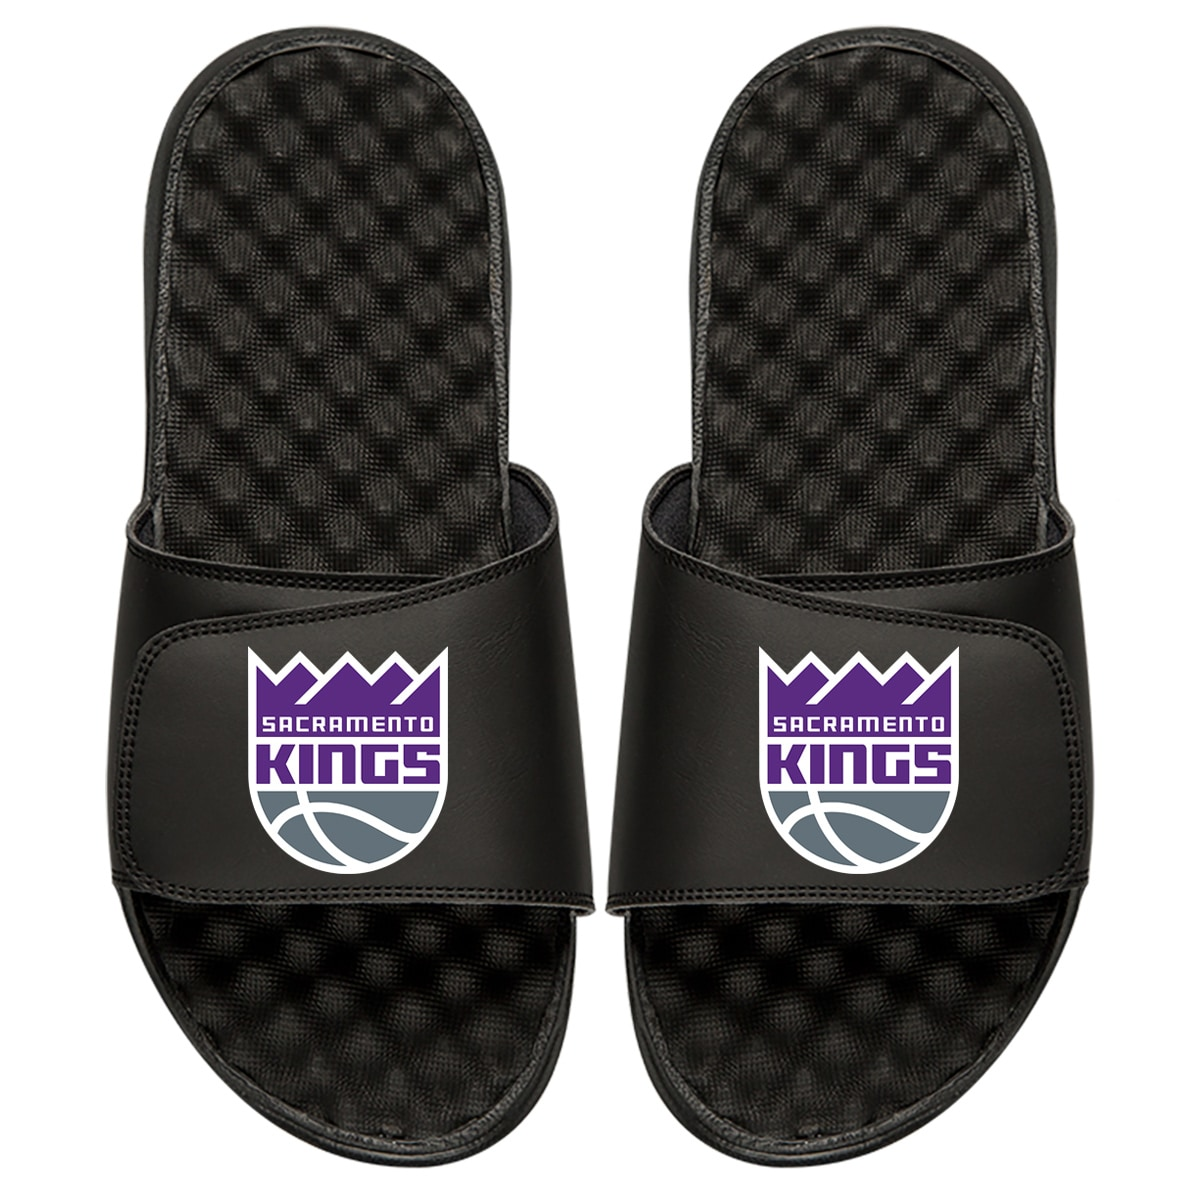 Sacramento Kings Primary iSlide Sandals - Black